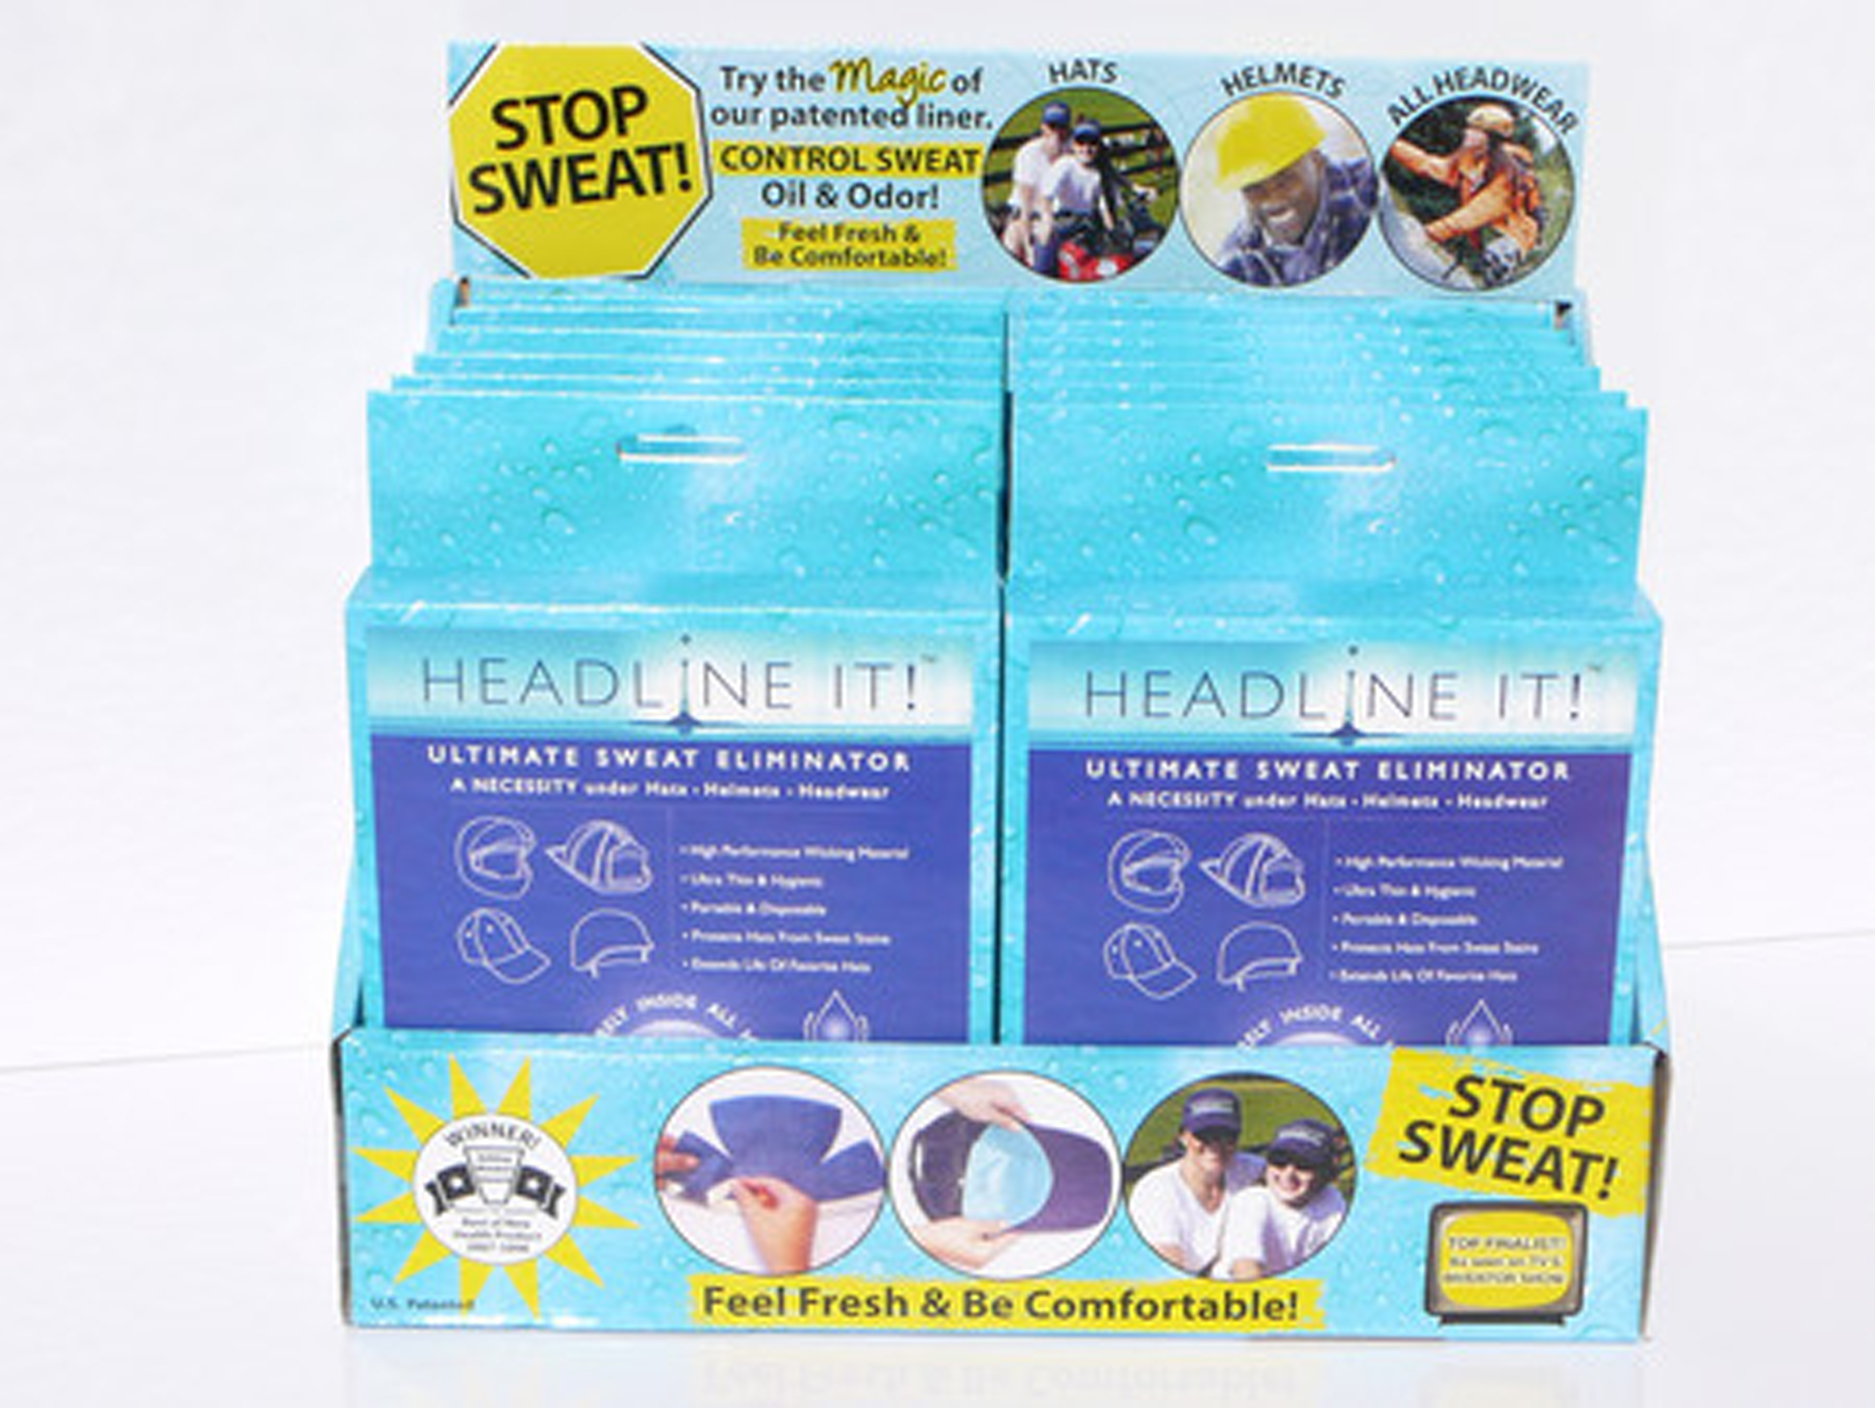 Headline IT! Helmet Liners- Counter Display with 12 Boxes of 10